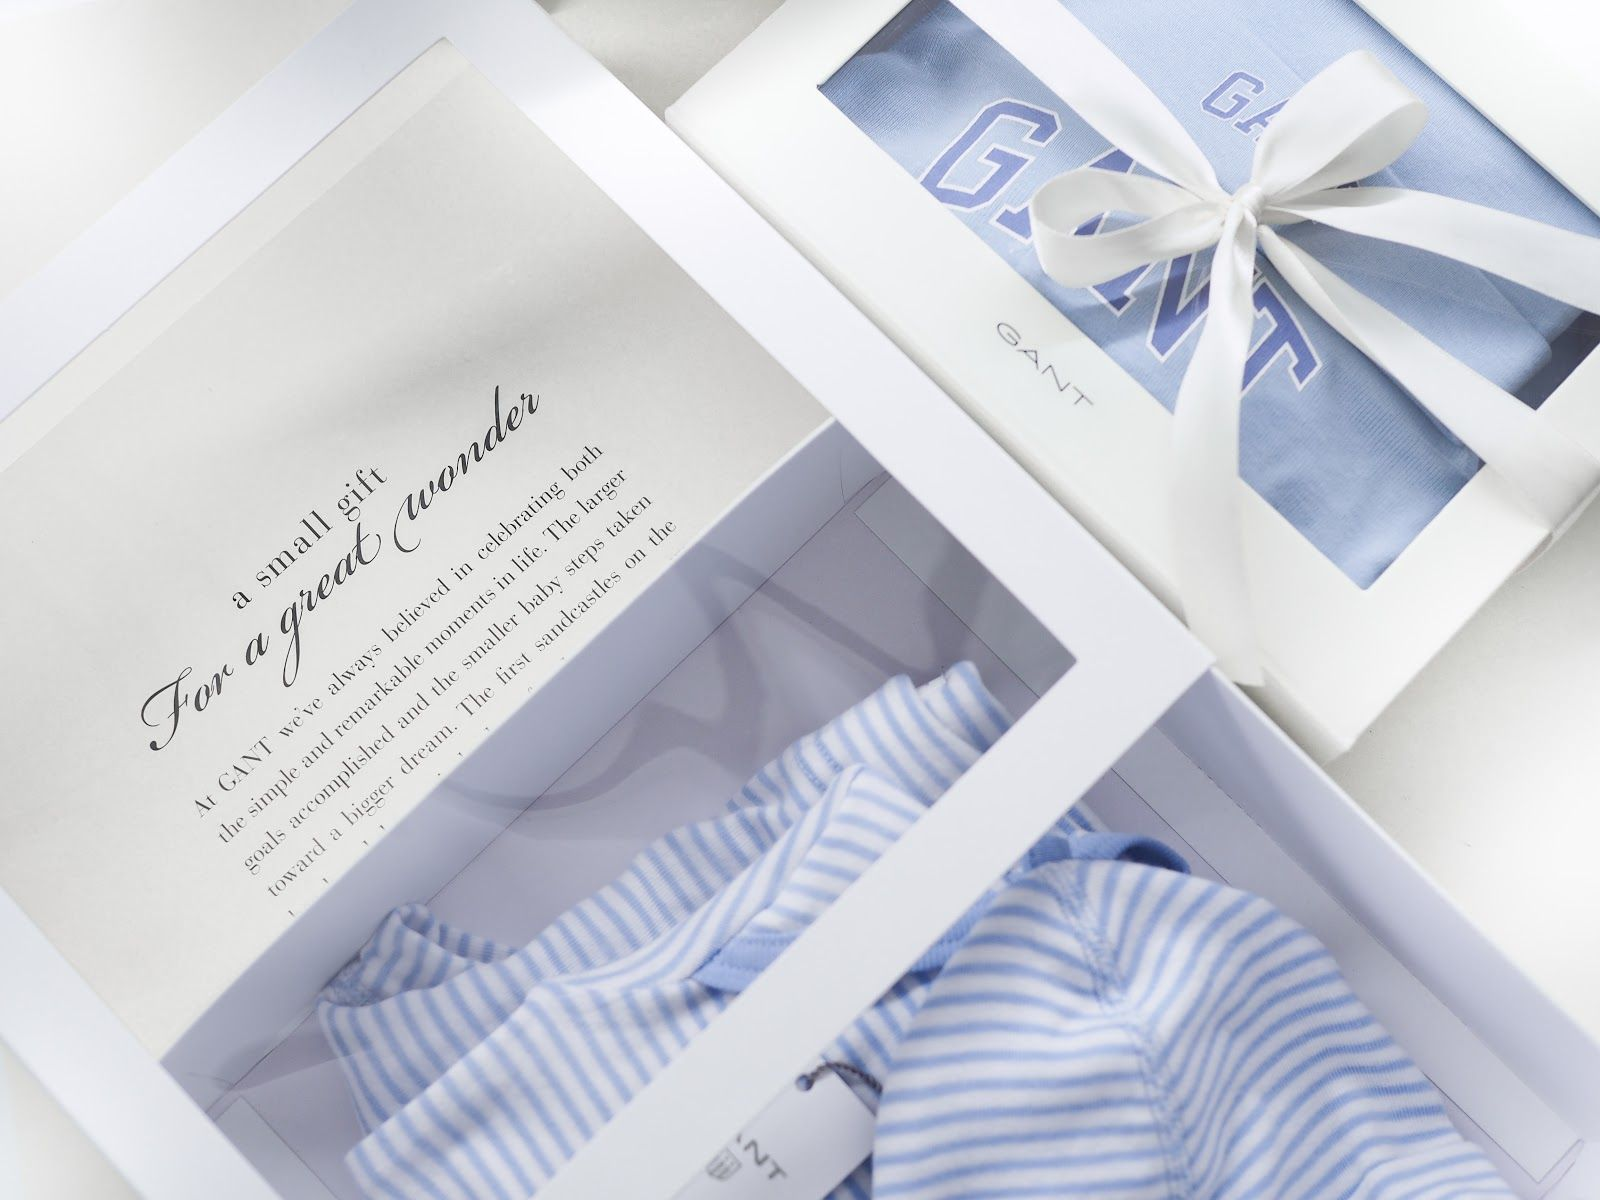 Teljänneito: there is a first time for everything, beautiful gift from Gant